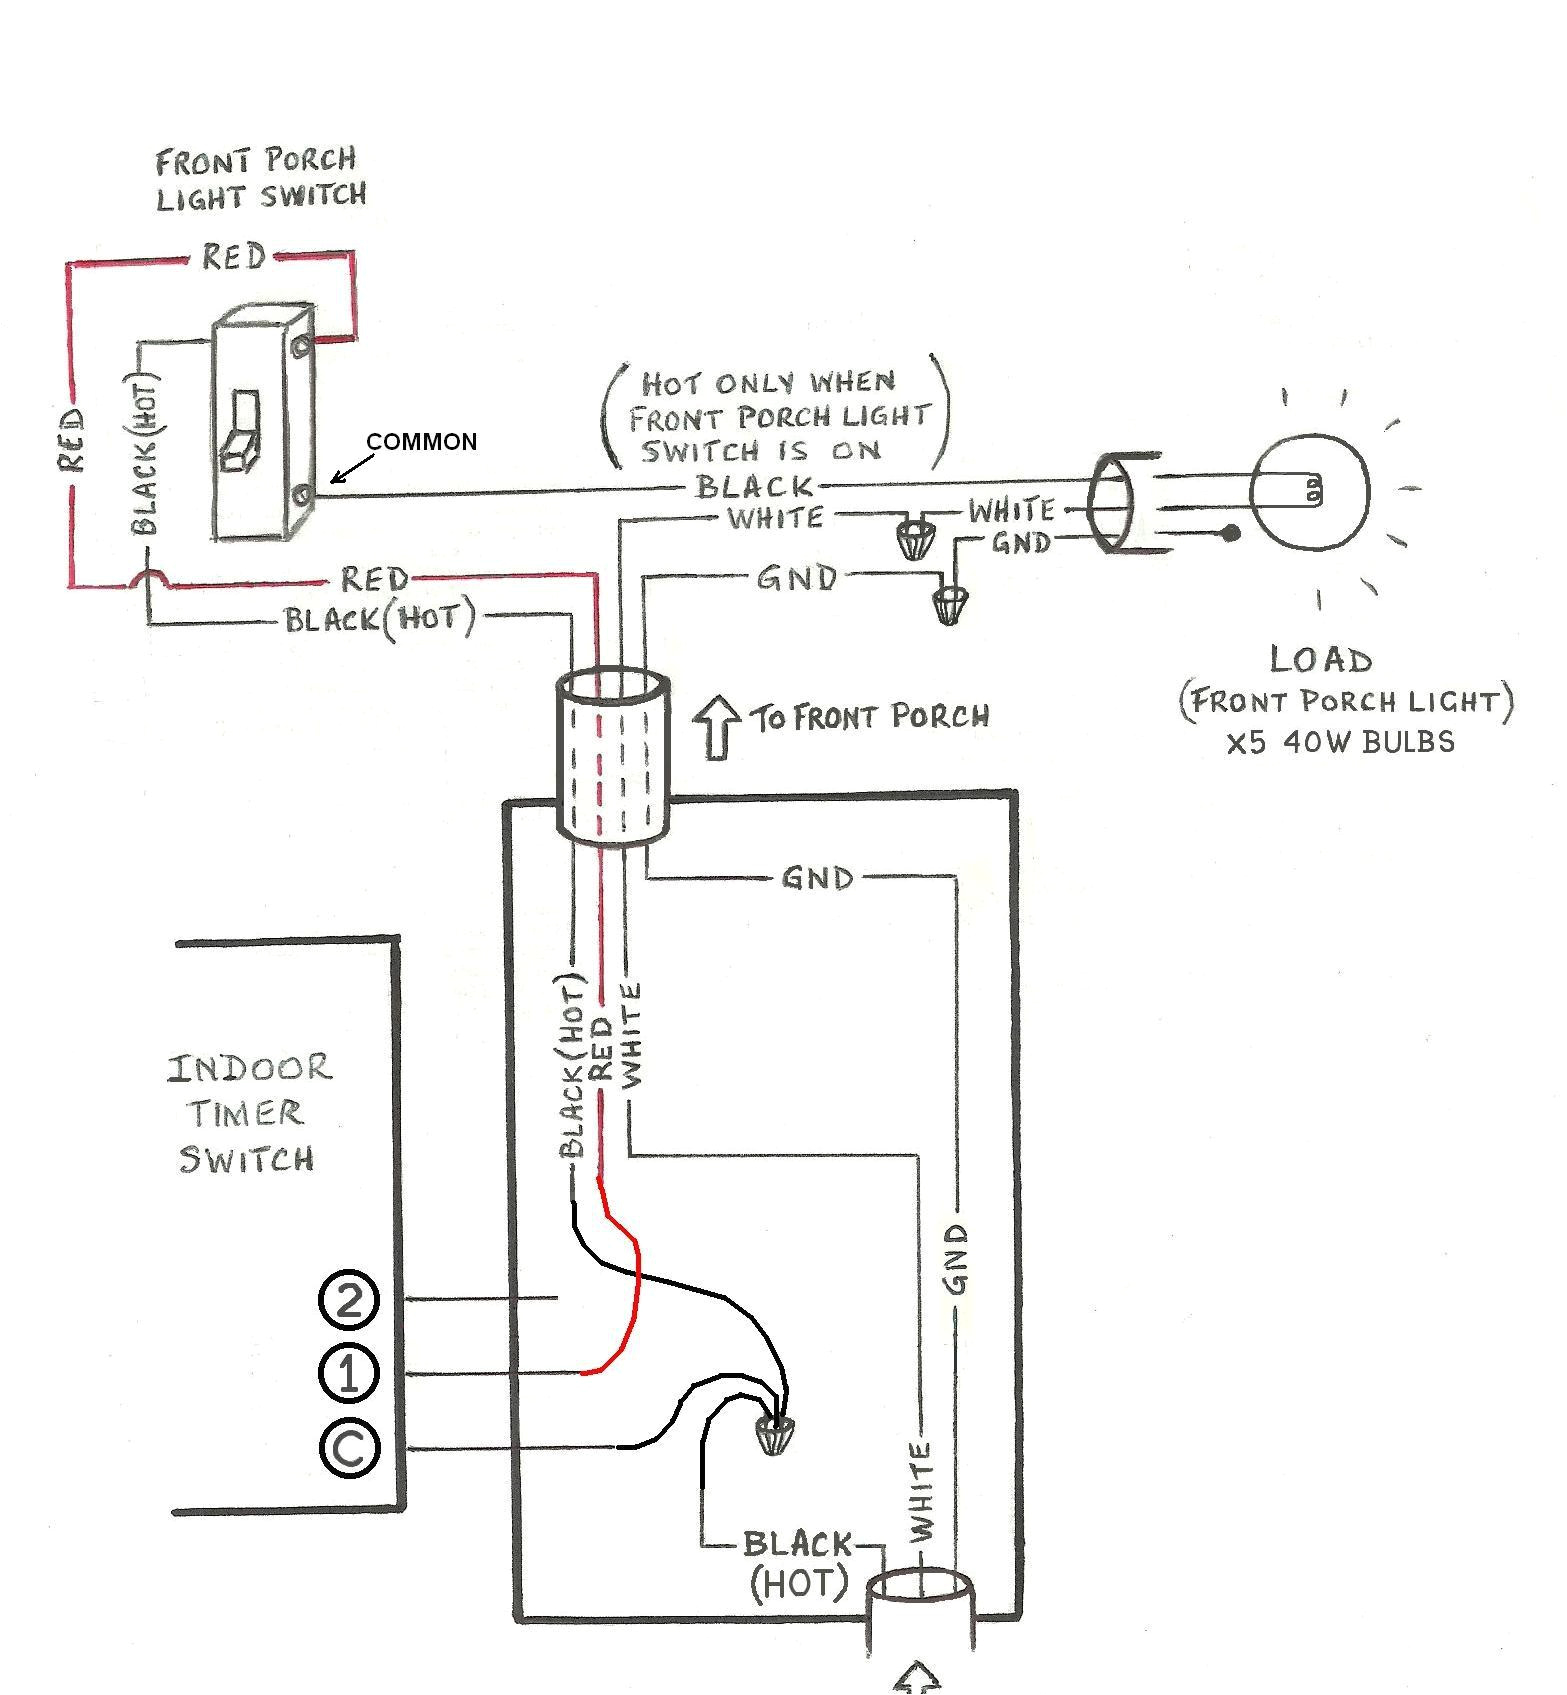 lighted rocker switch wiring diagram 120v fresh lighted toggle switch wiring diagram inspirational lighted rocker